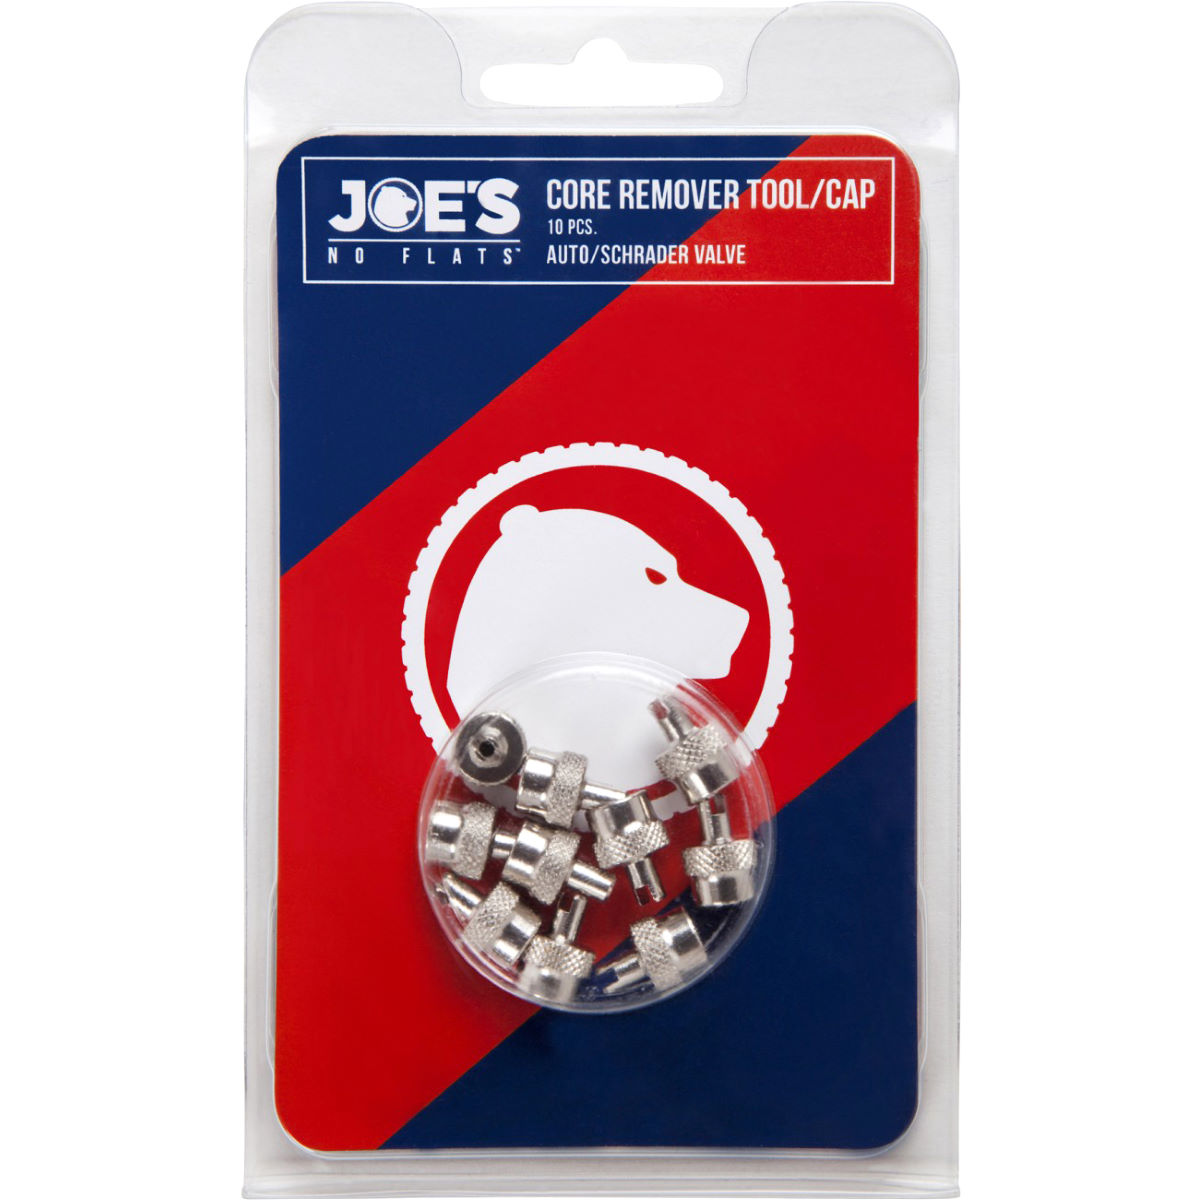 Joe's No Flats Valve Key and Cap - 10 Pack   Wheel Spares